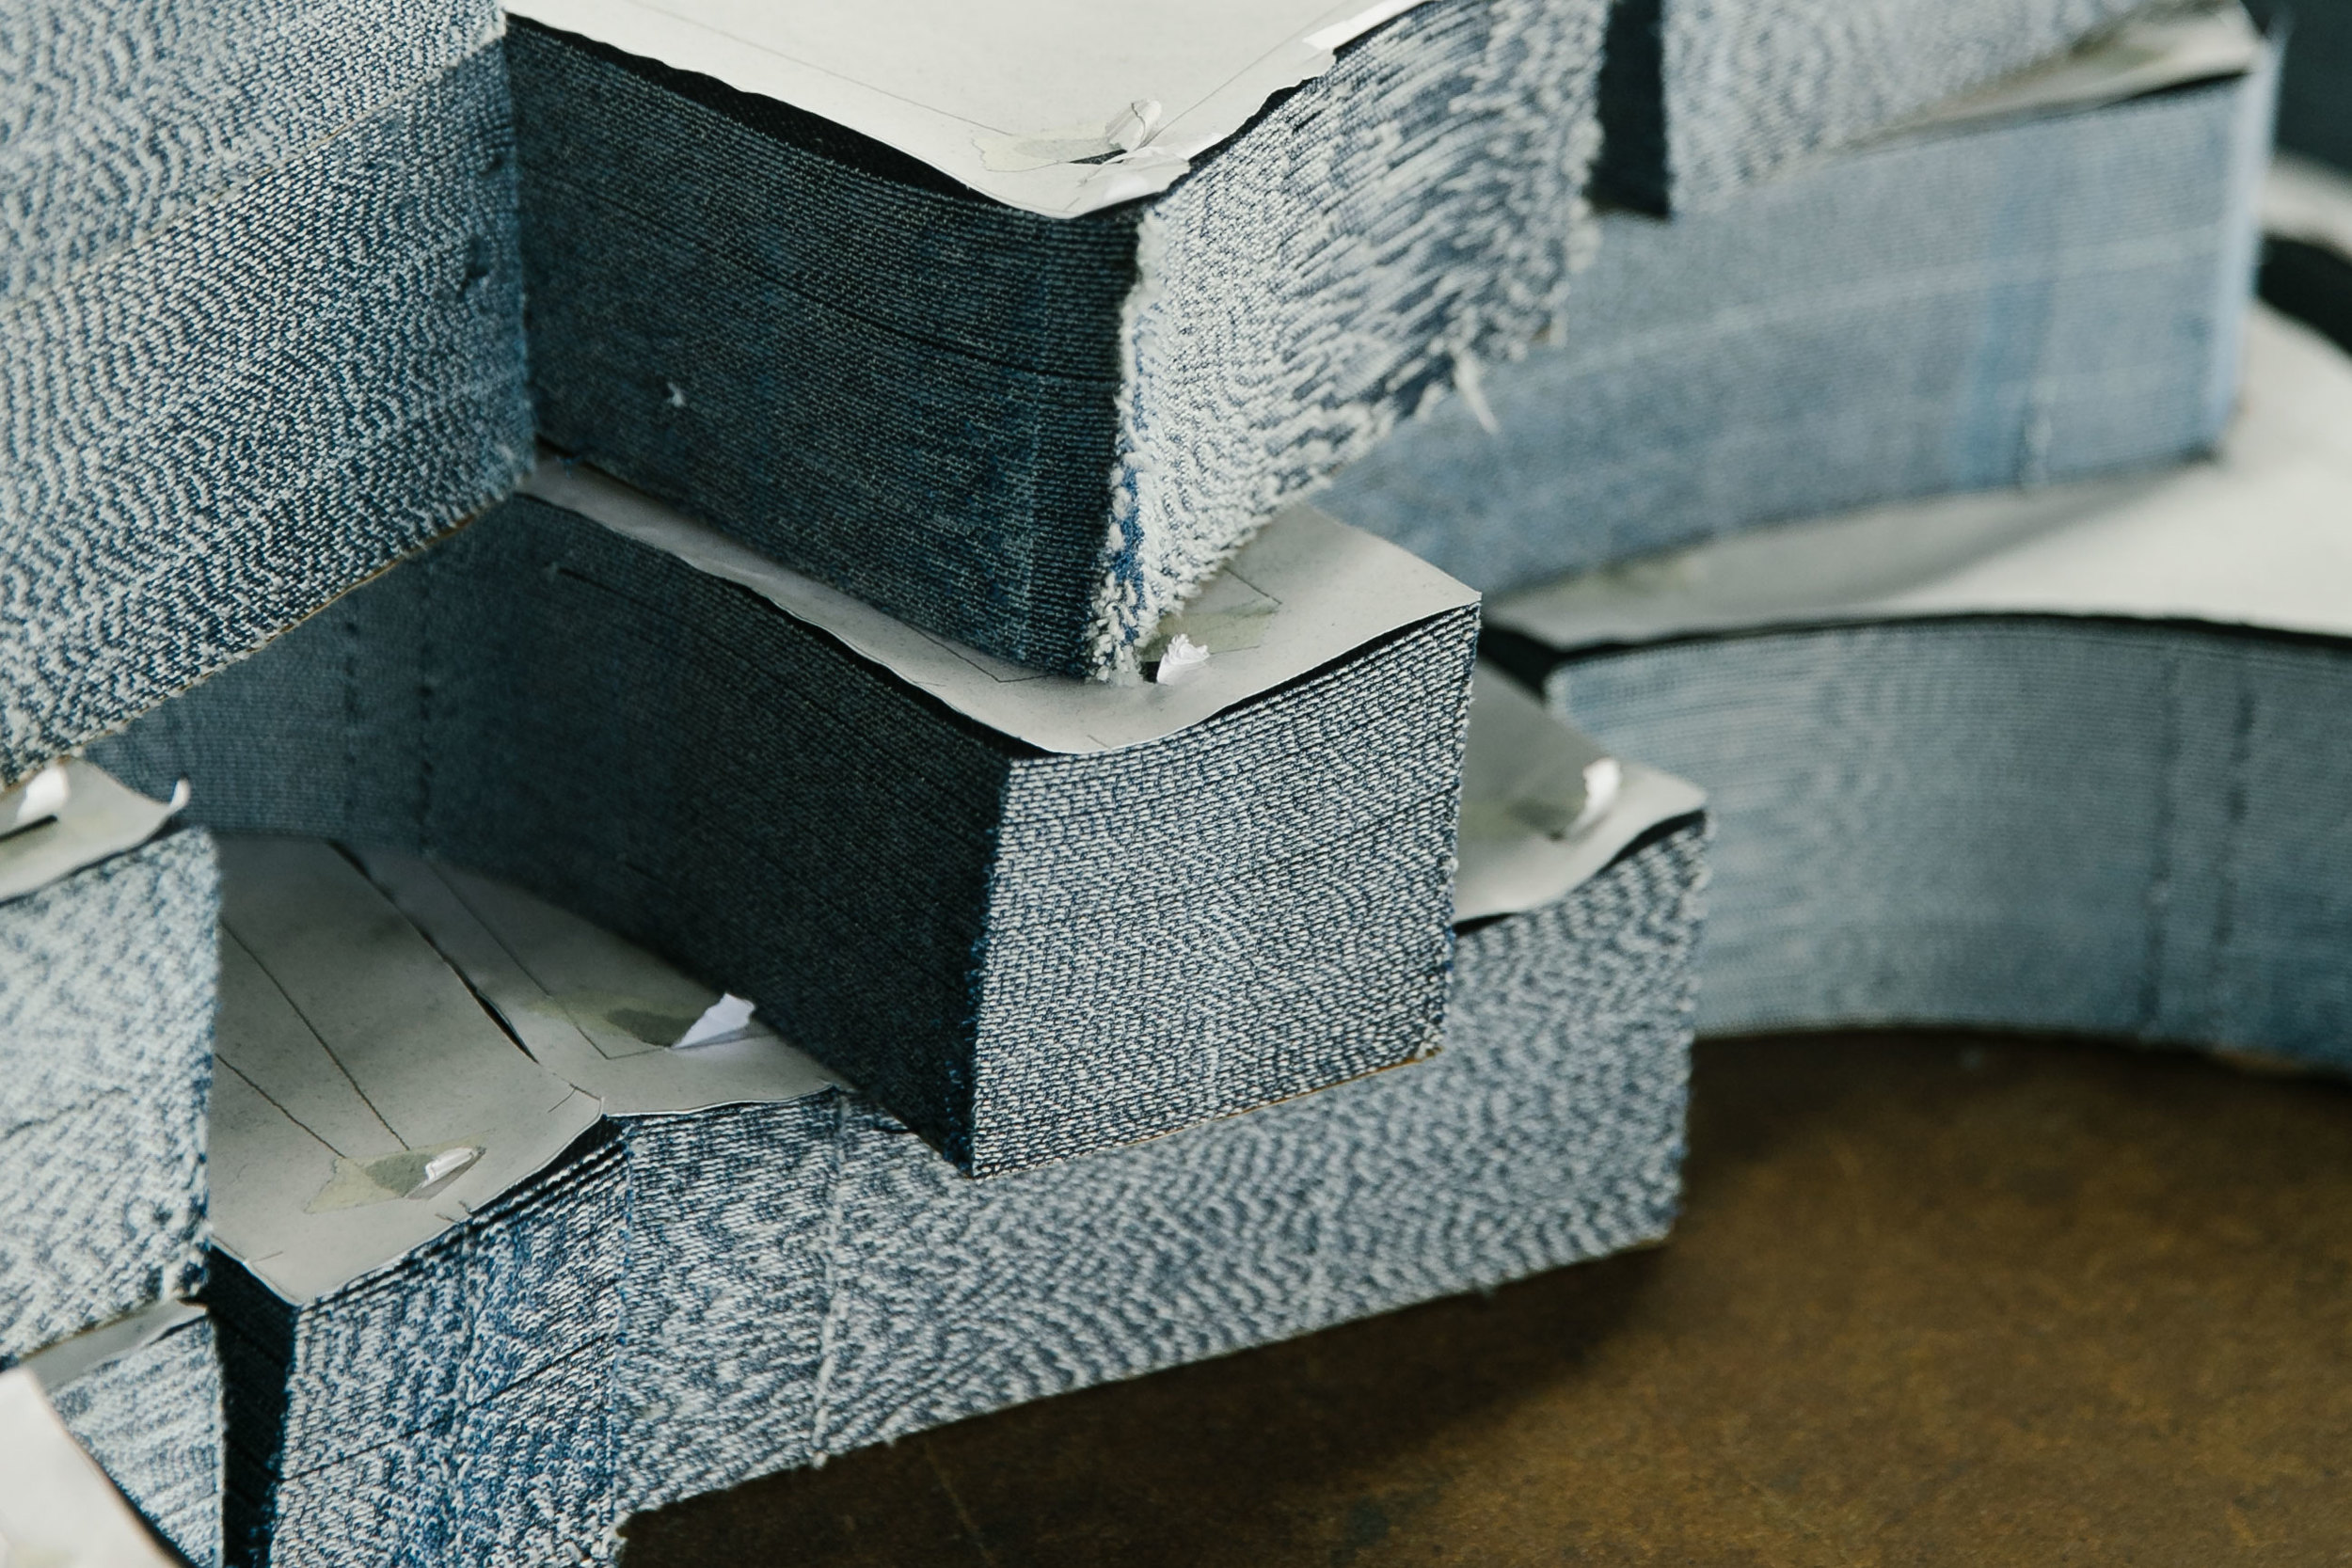 Stacks of individual panels, cut precisely according to the master pattern, wait to be assembled into pairs of jeans.(Photo: Angi Welsch/Surface)